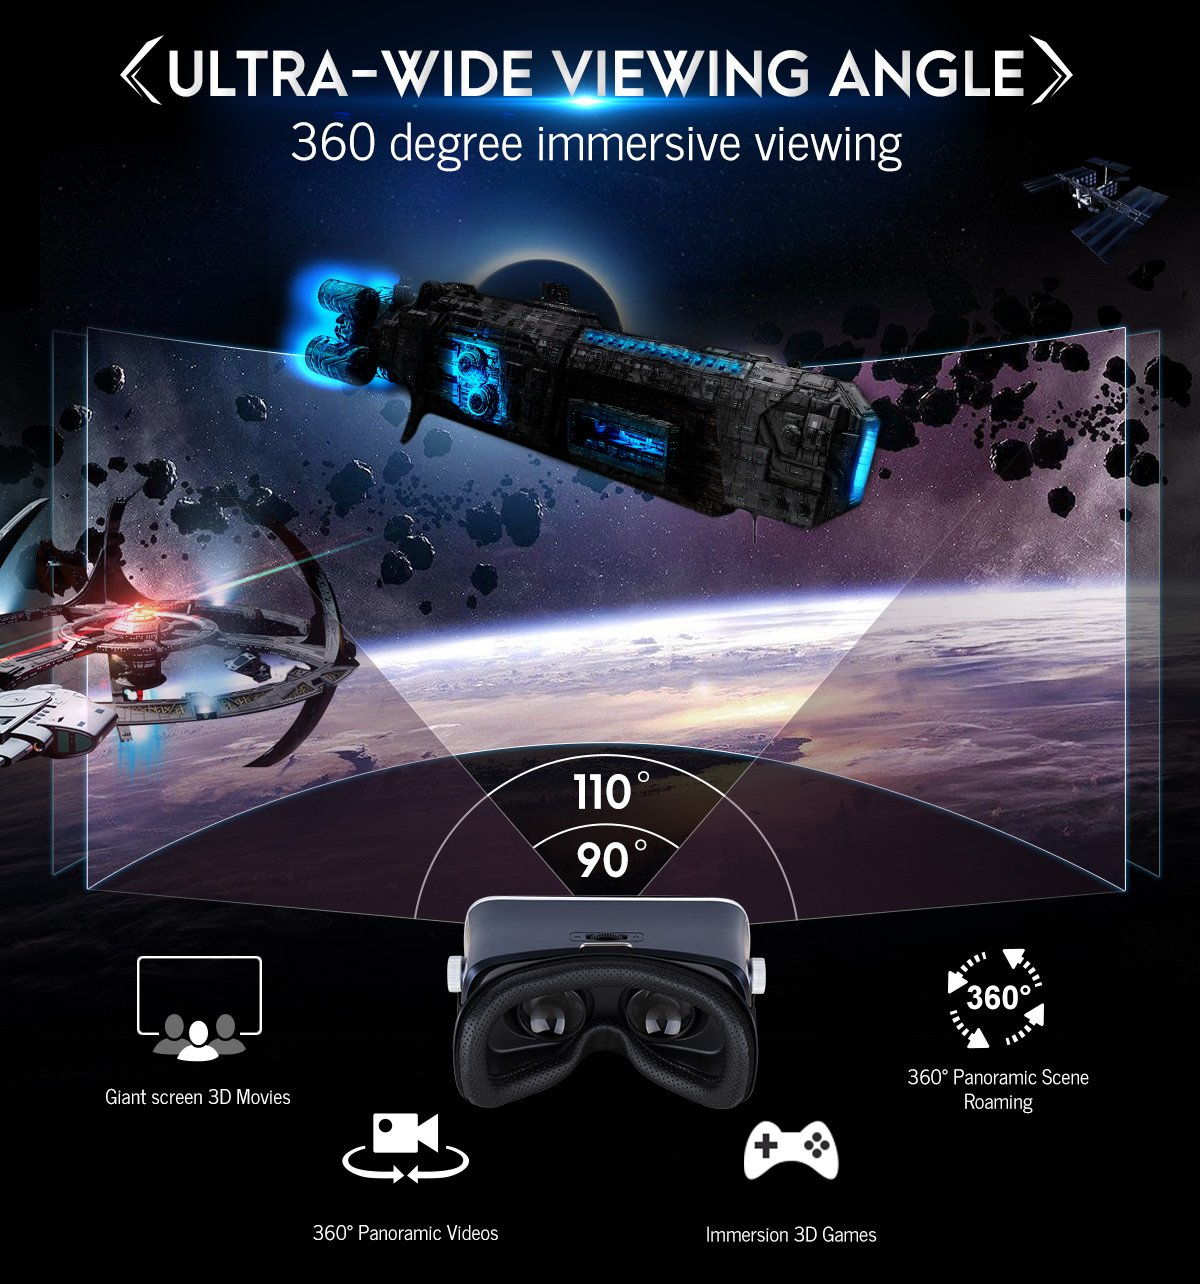 Pansonite 3D VR Glasses Virtual Reality Headset for Games & 3D Movies, Upgraded & Lightweight with Adjustable Pupil and Object Distance for IOS and Android Smartphone by Pansonite (Image #7)